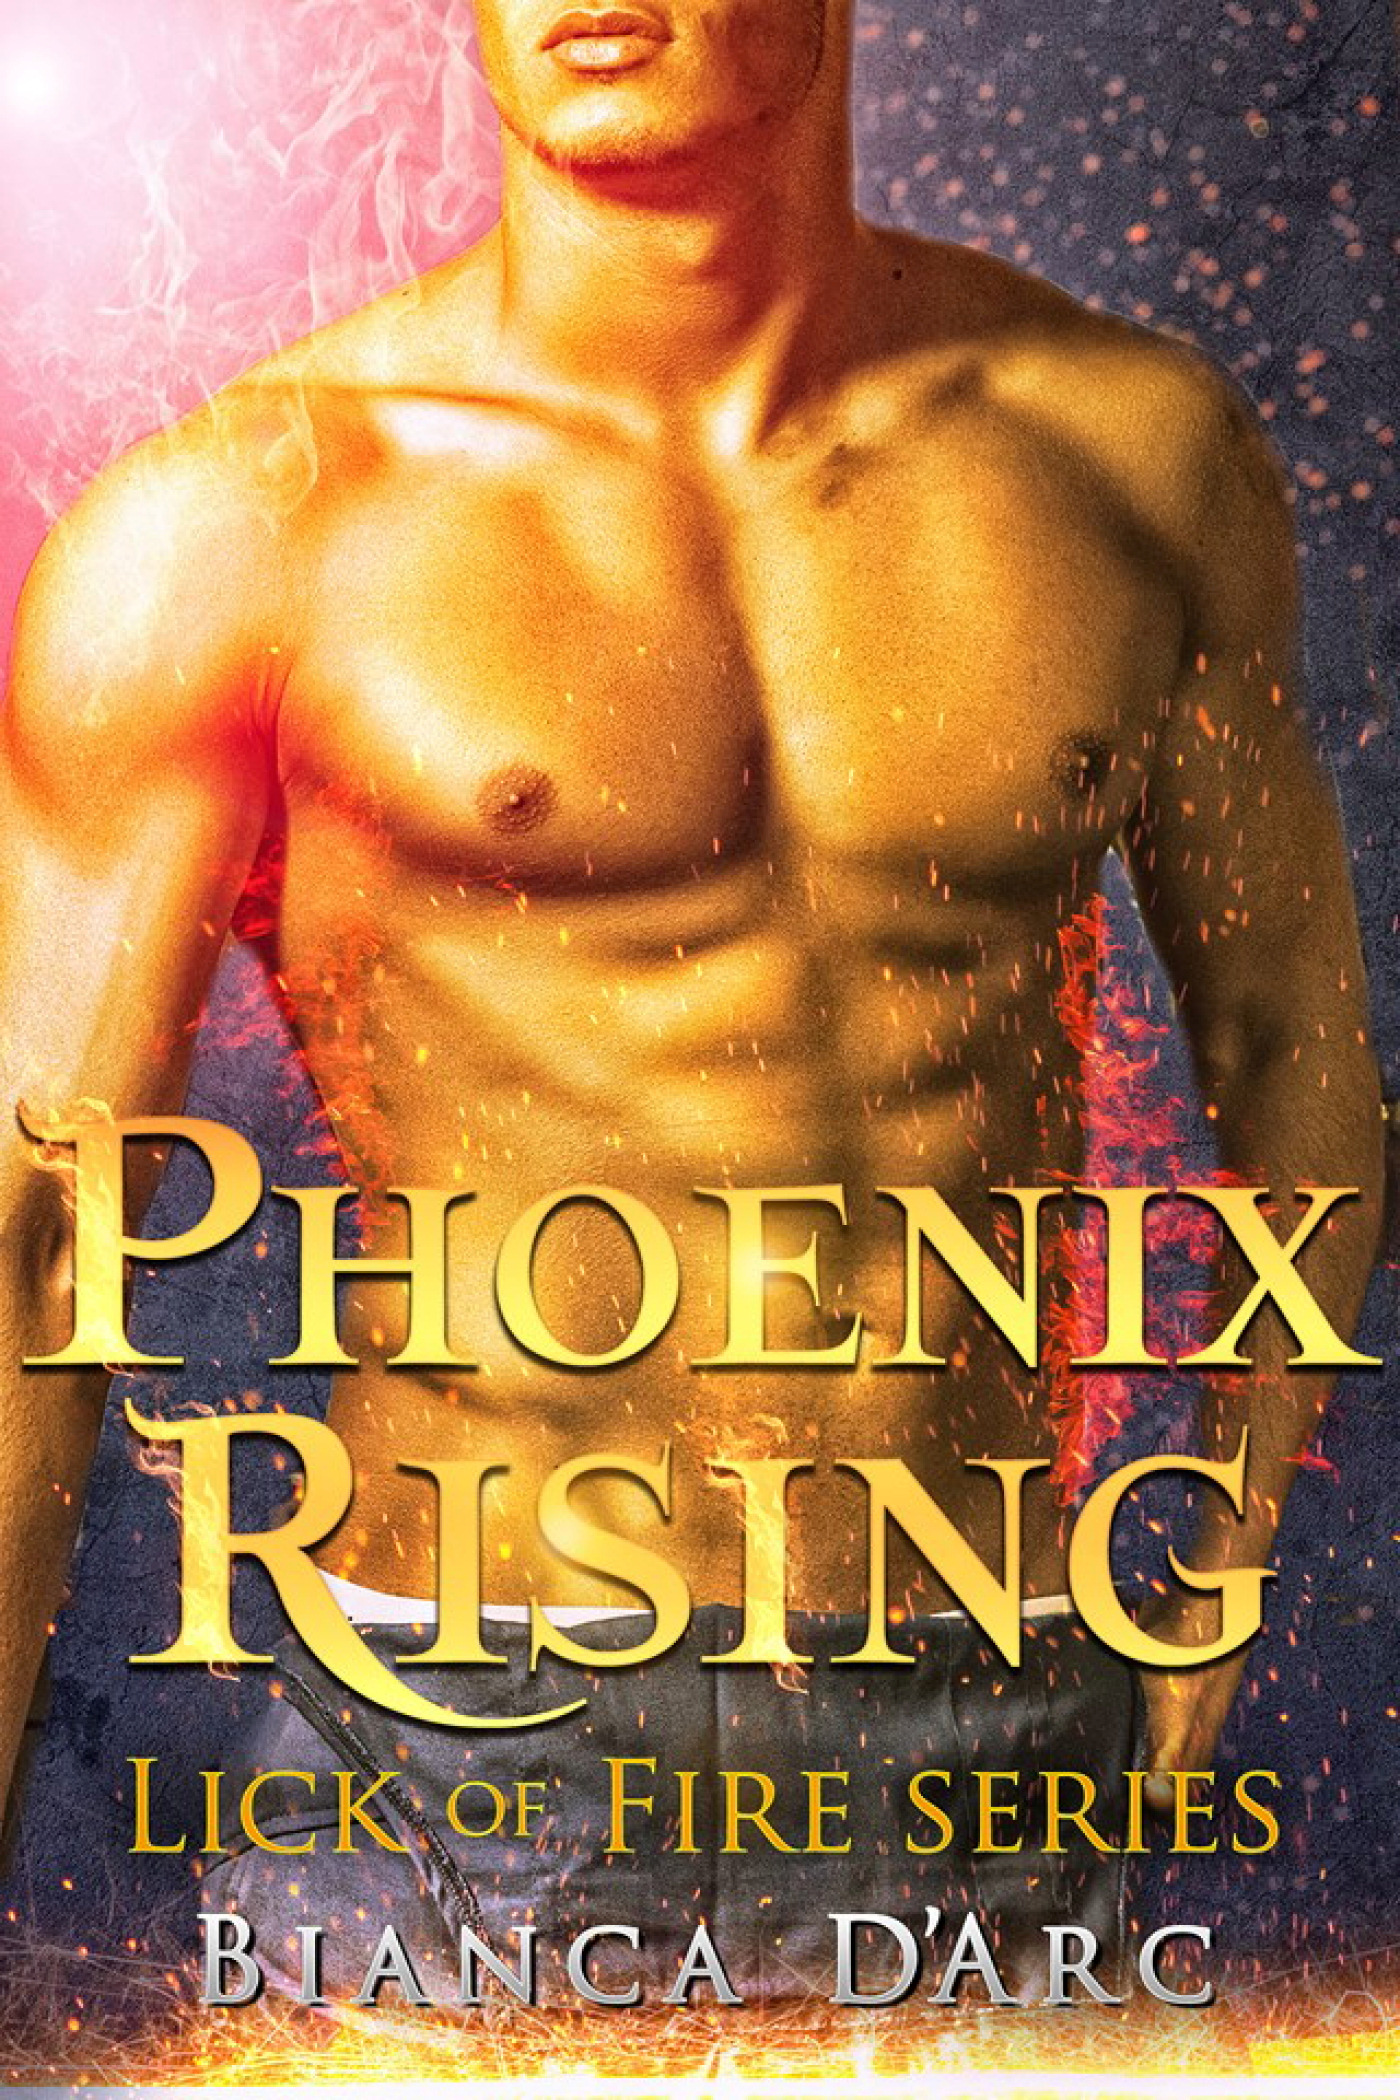 The Phoenix Rising Book